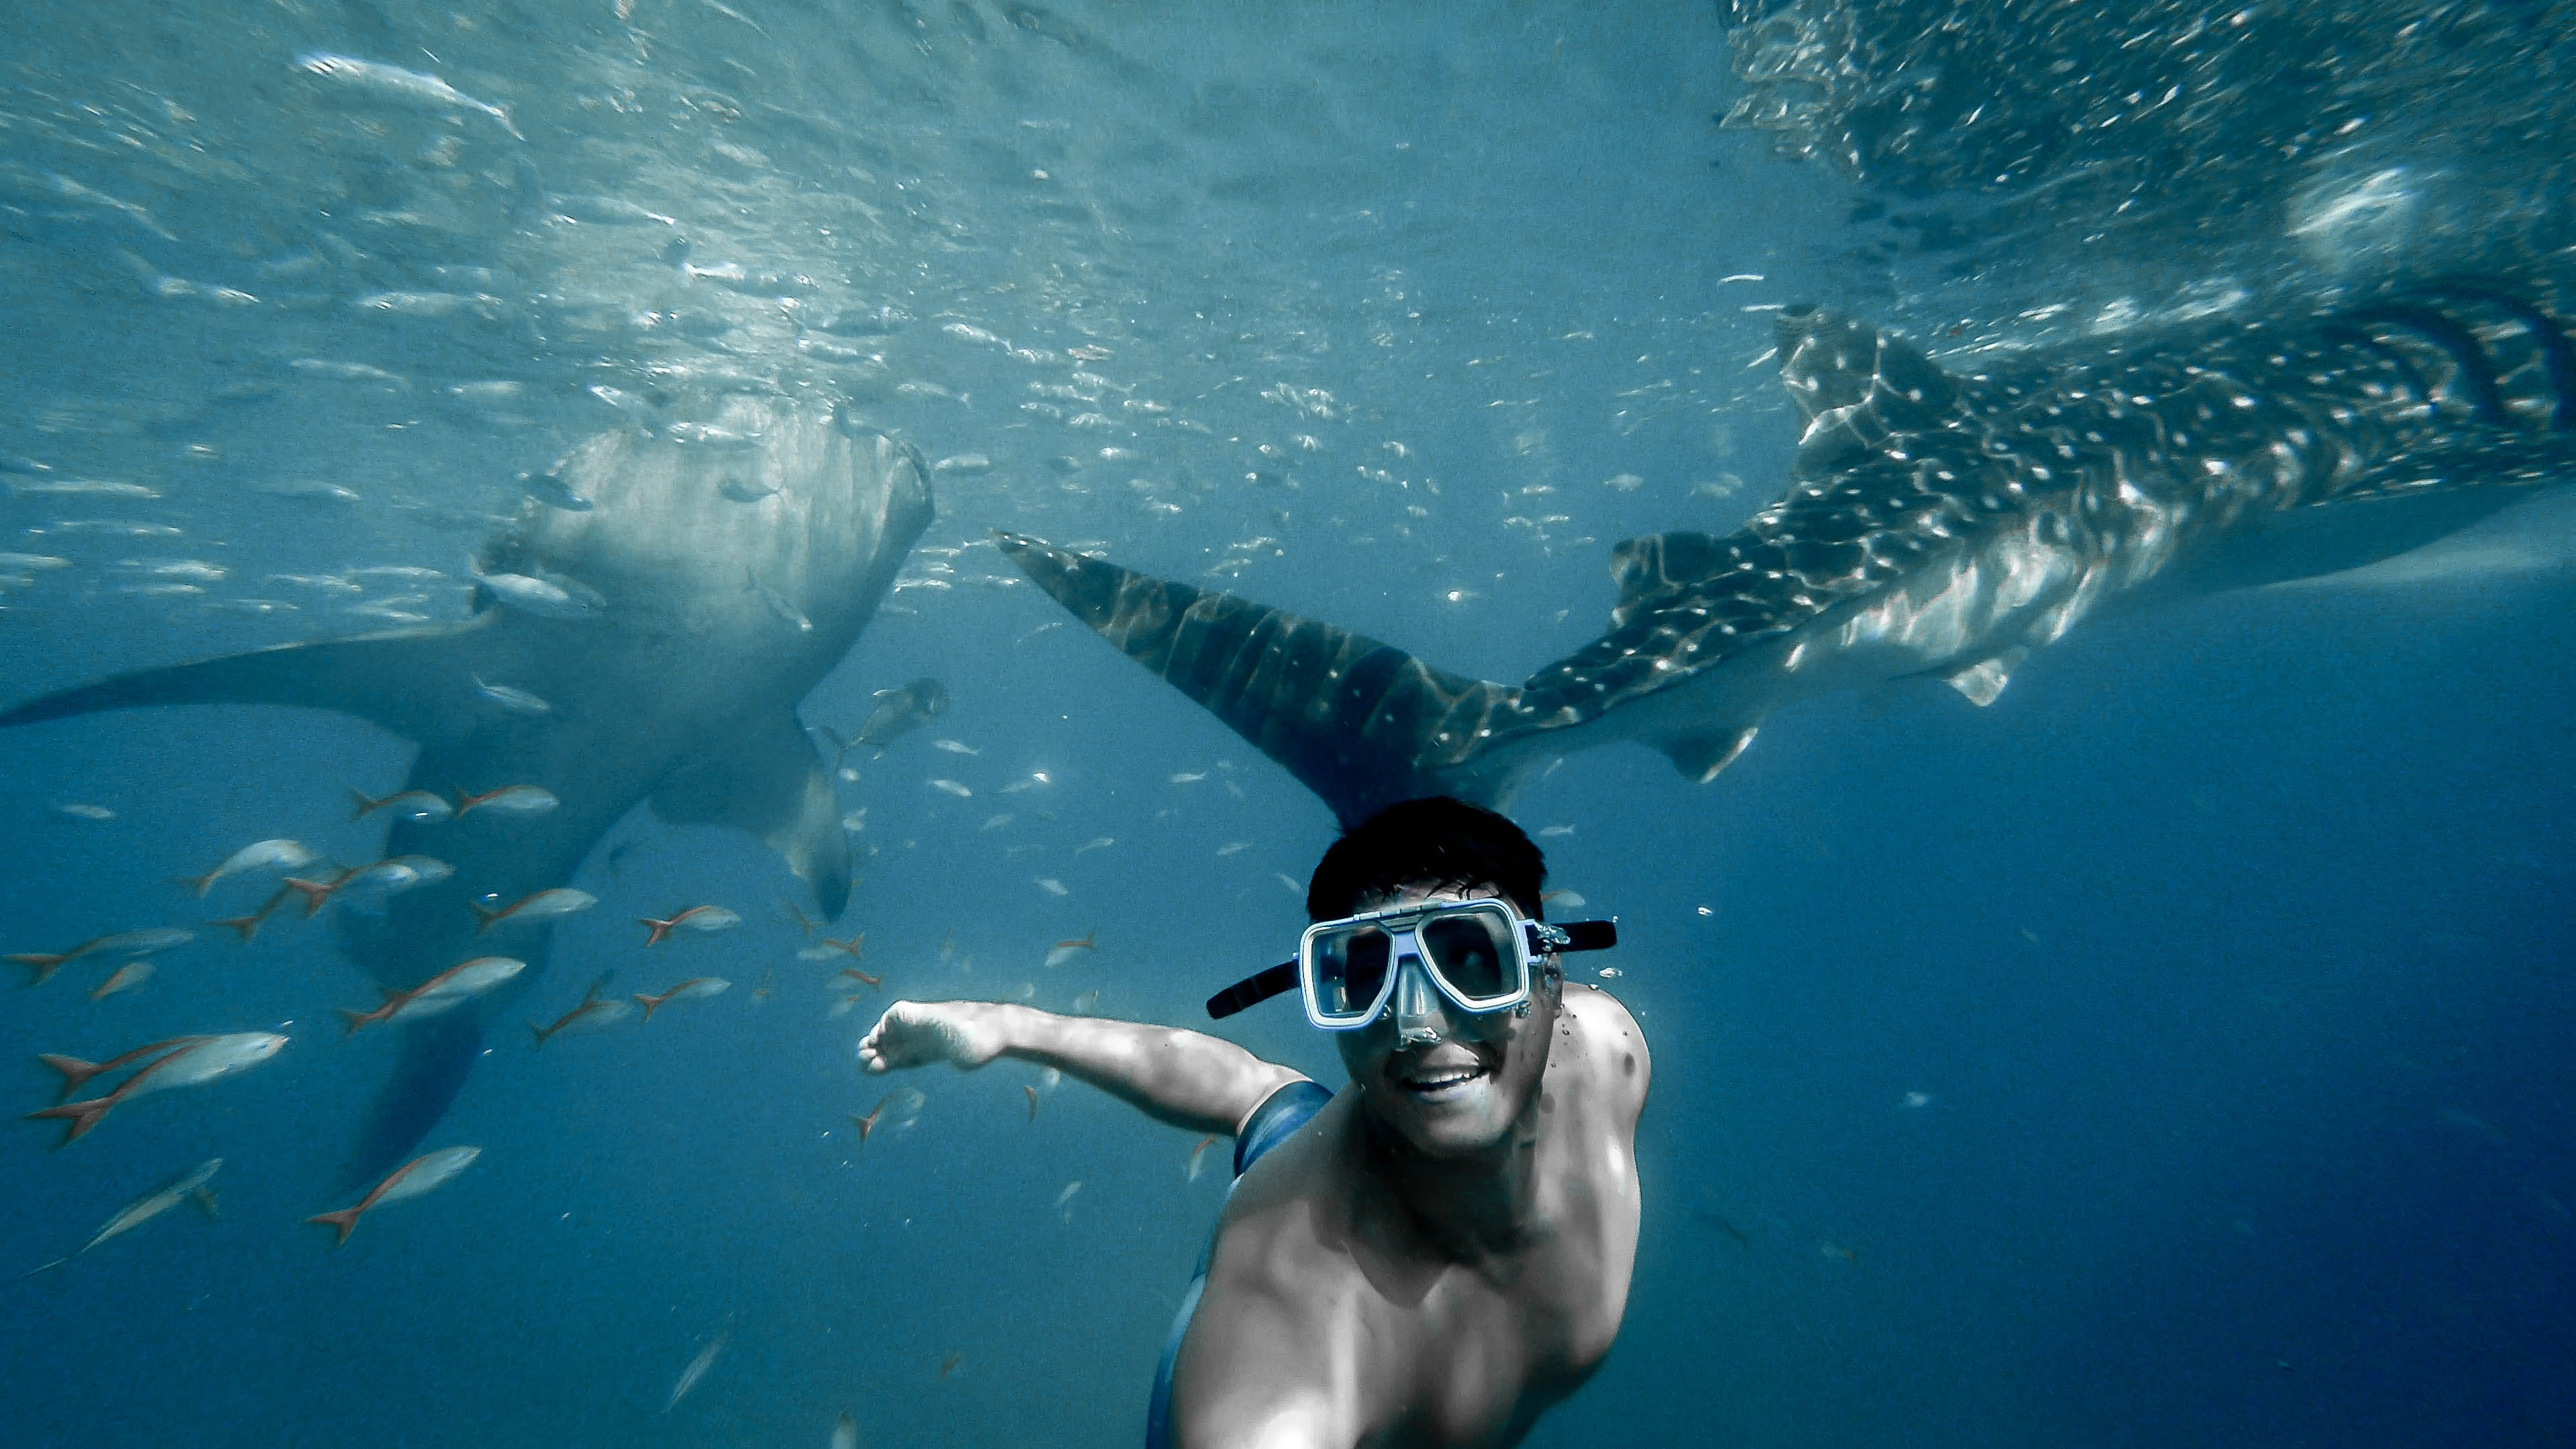 michael l 2UVX62wP vo unsplash 1 - Animals That You Need To Swim With Atleast Once In Your Life